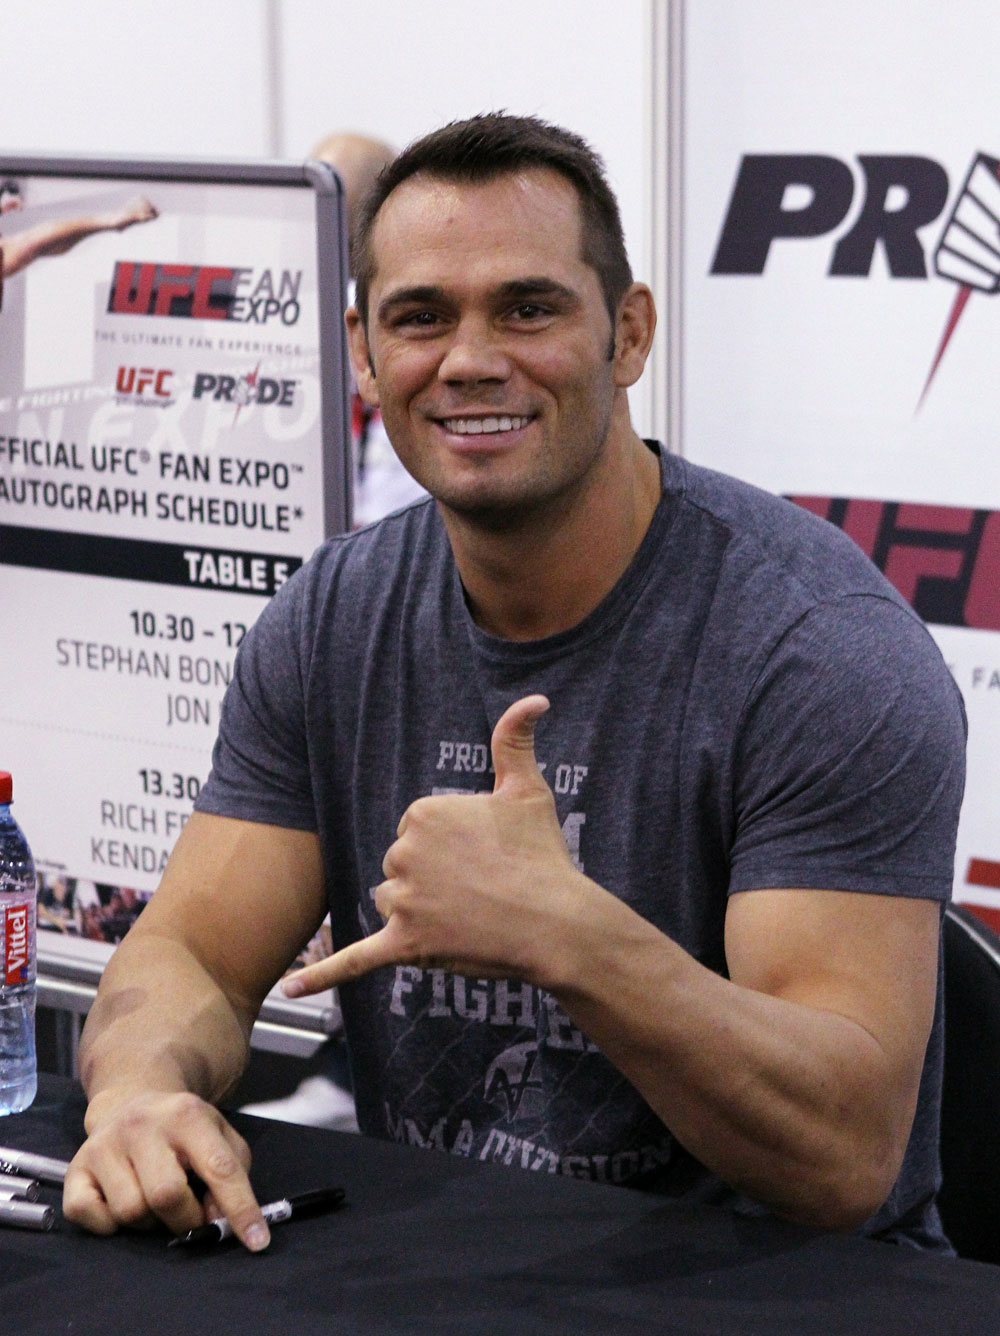 Former UFC Middleweight Champion Rich Franklin at the UFC Fan Expo London